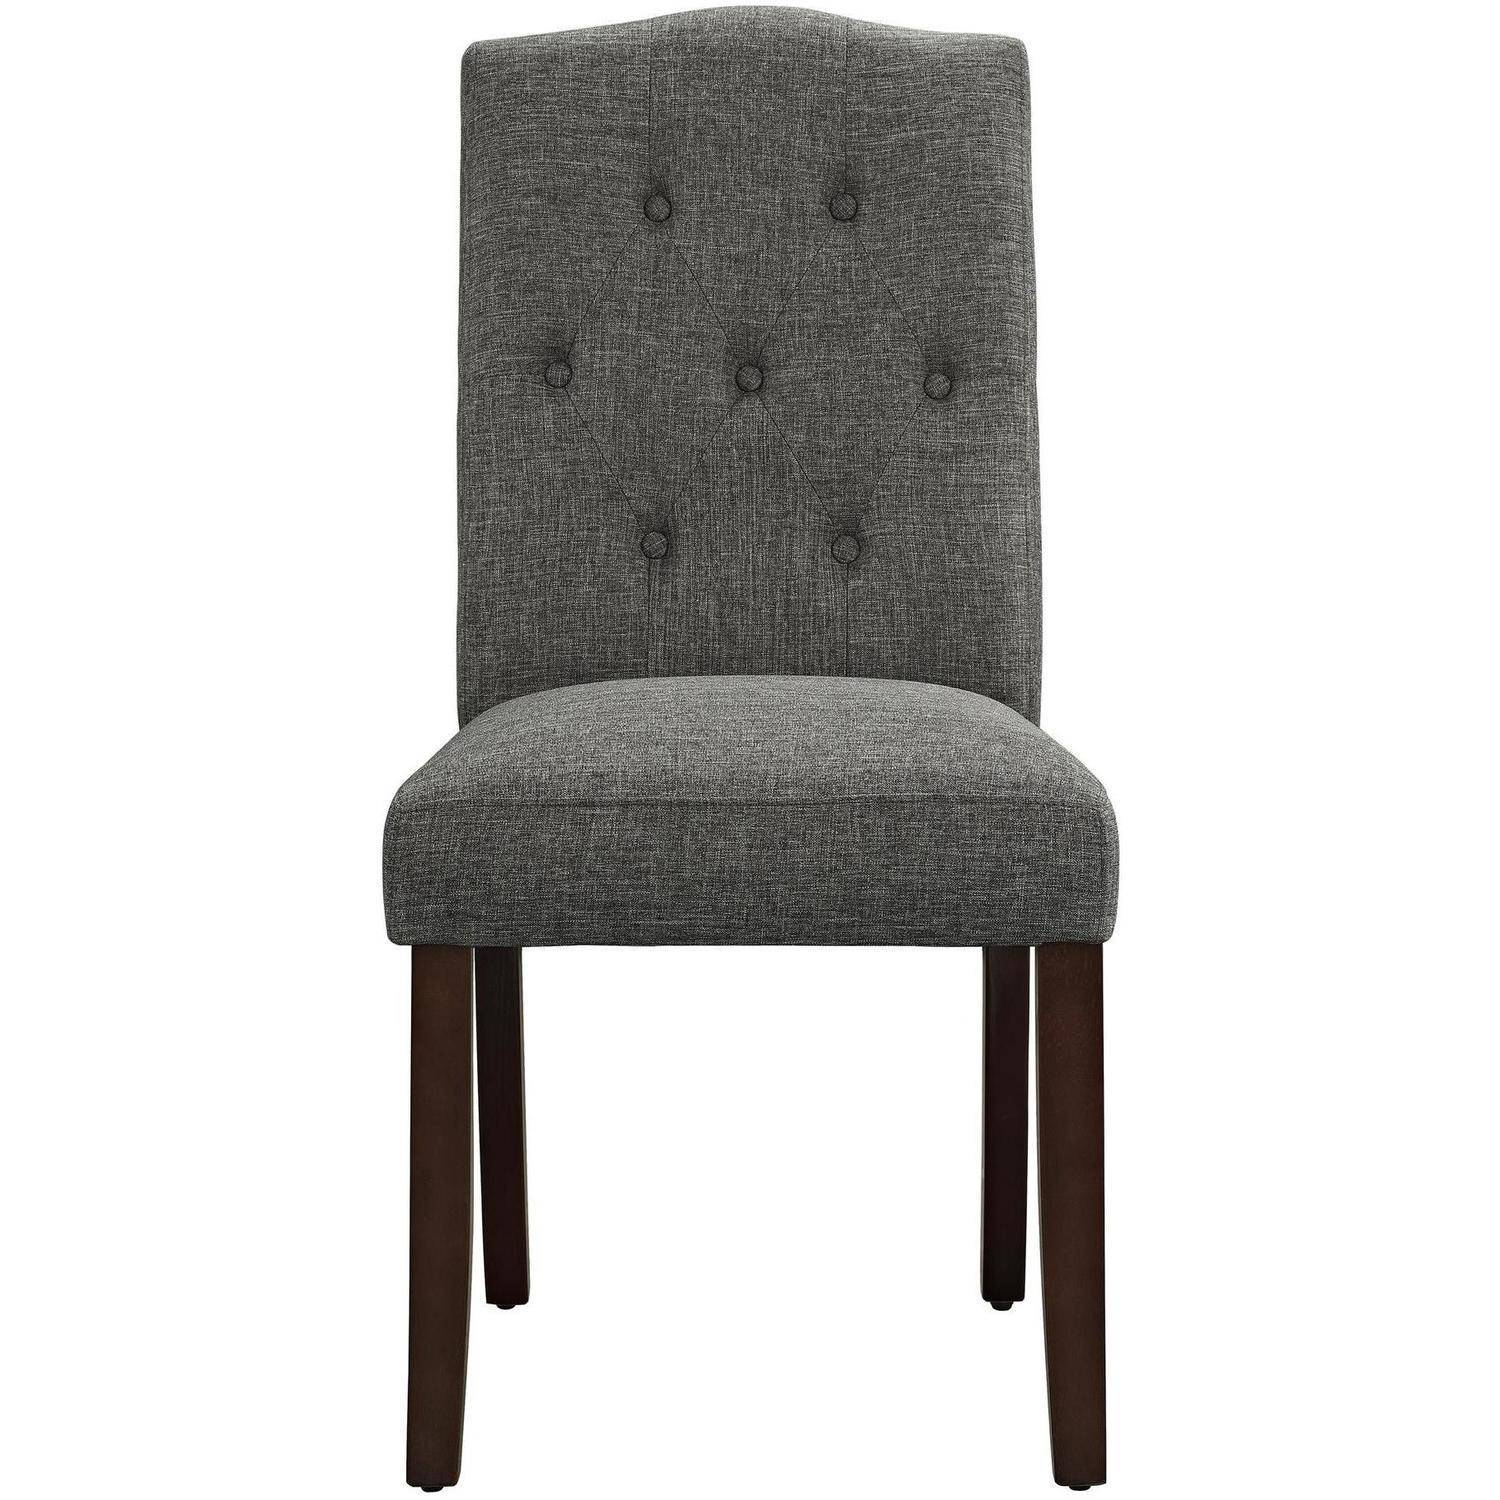 Kitchen Chairs Of Dining Room Tufted Dining Chair Upholstered Side Chairs